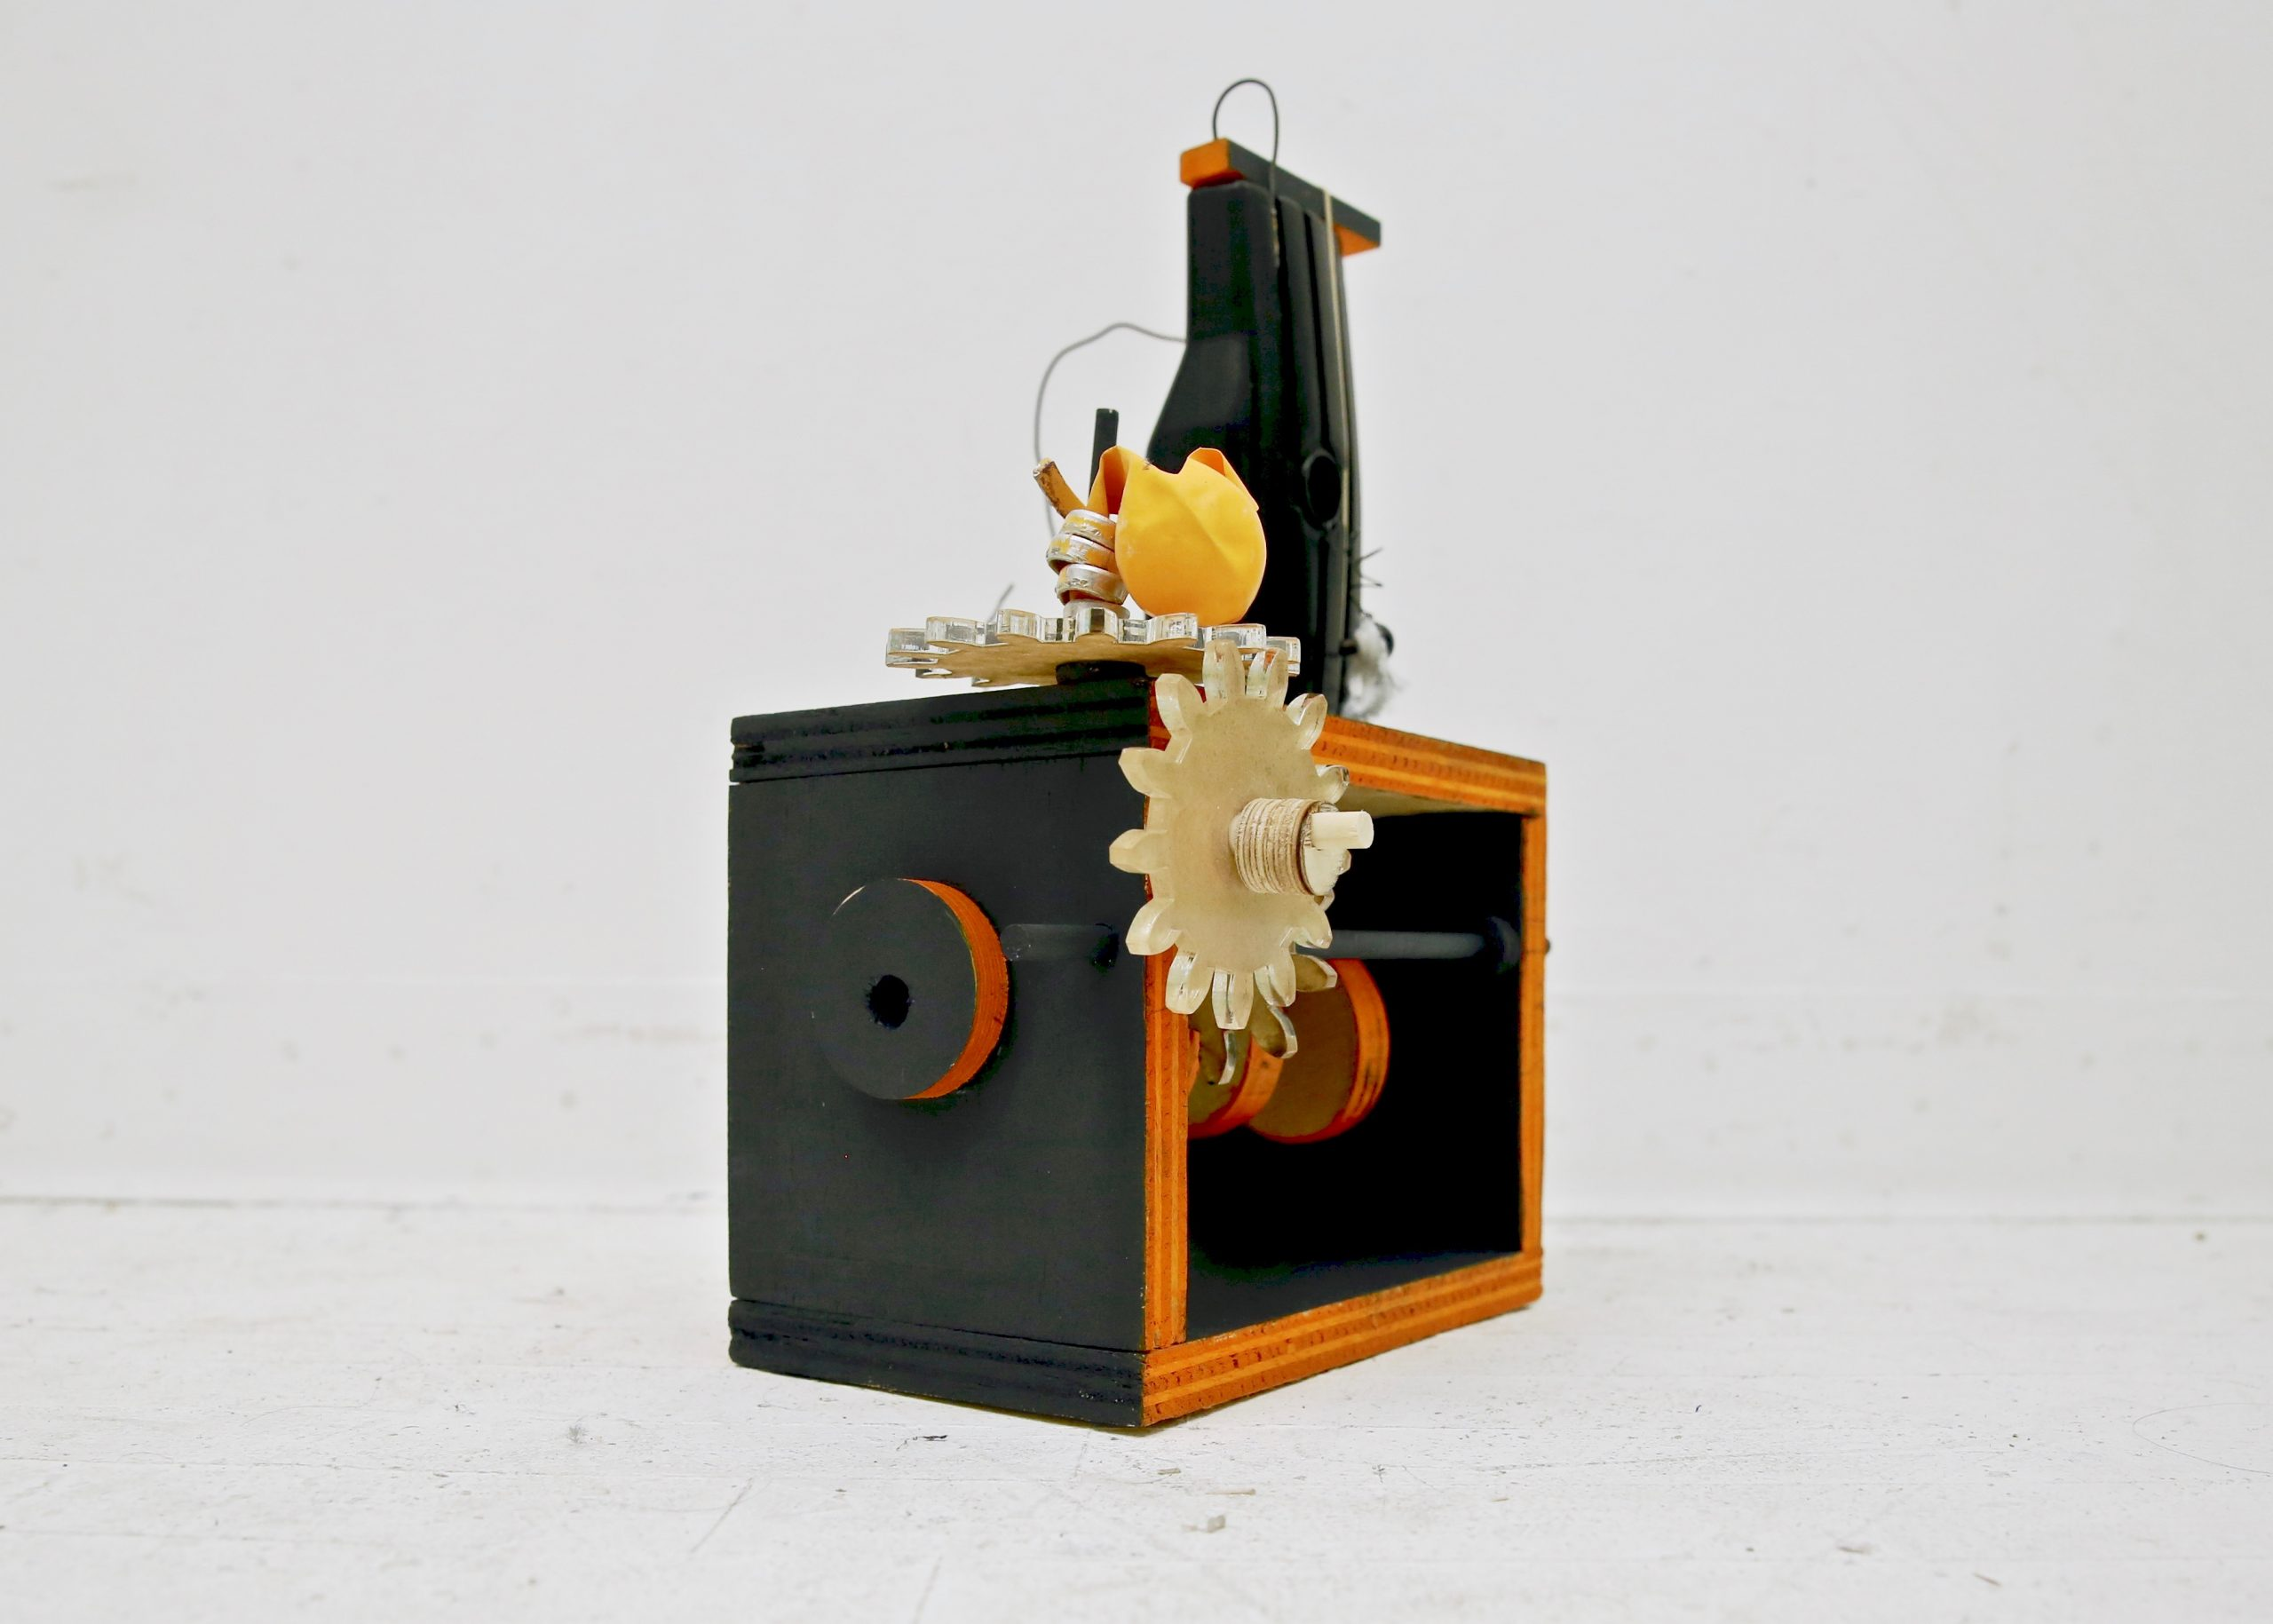 Spooky Sad Box, 2017, Acrylic gears, found wood, rubber bands, balloons, wire, paper pulp, swivel chair part, plastic thumb, plastic eye, plastic skeleton toy fragment, acrylic paint, wood glue, and brads, approx. 12